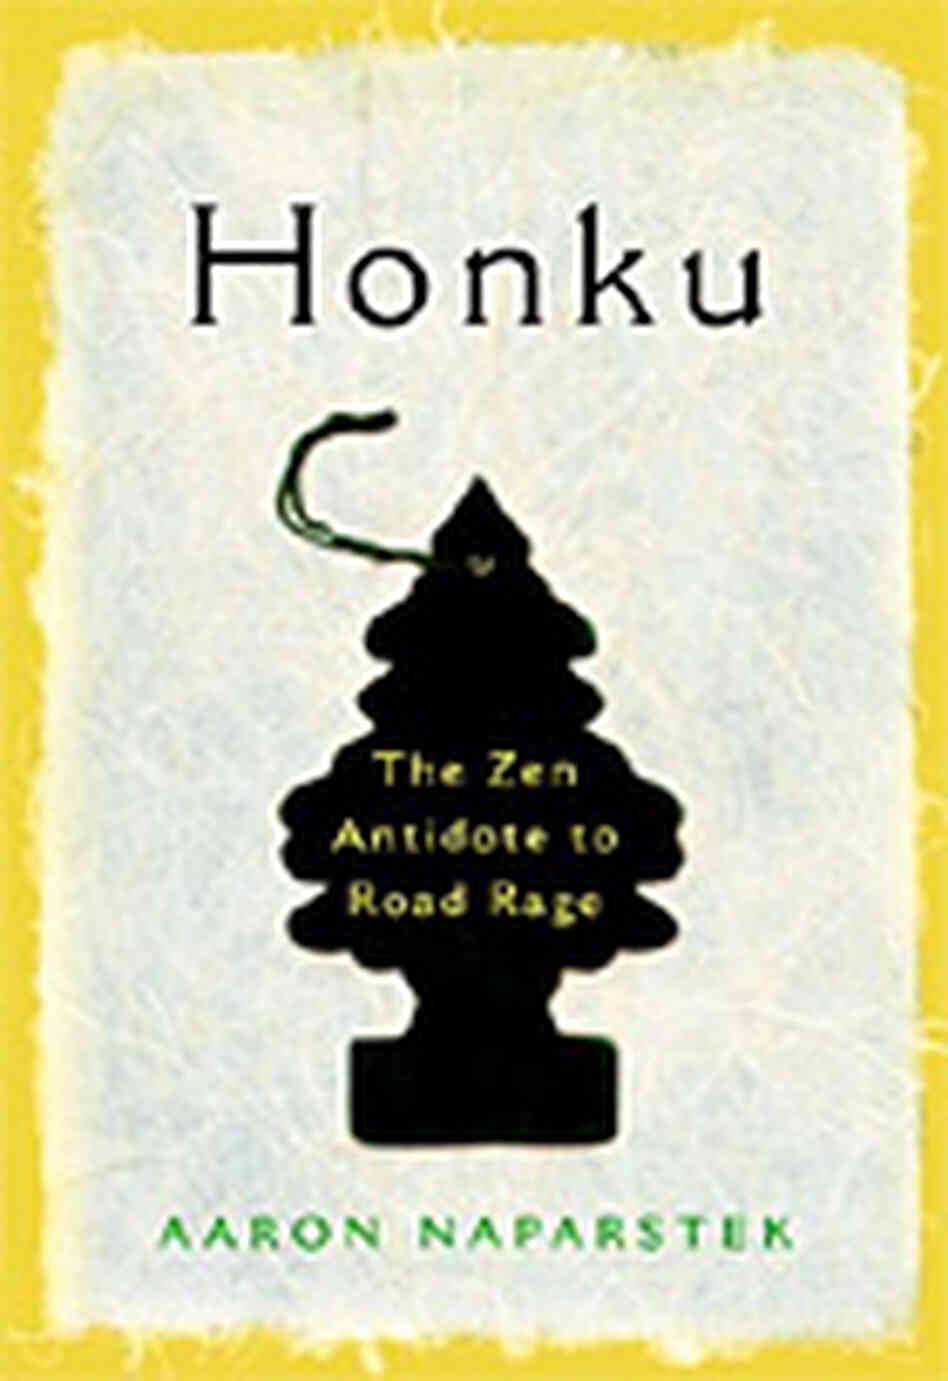 'Honku: The Zen Antidote to Road Rage'